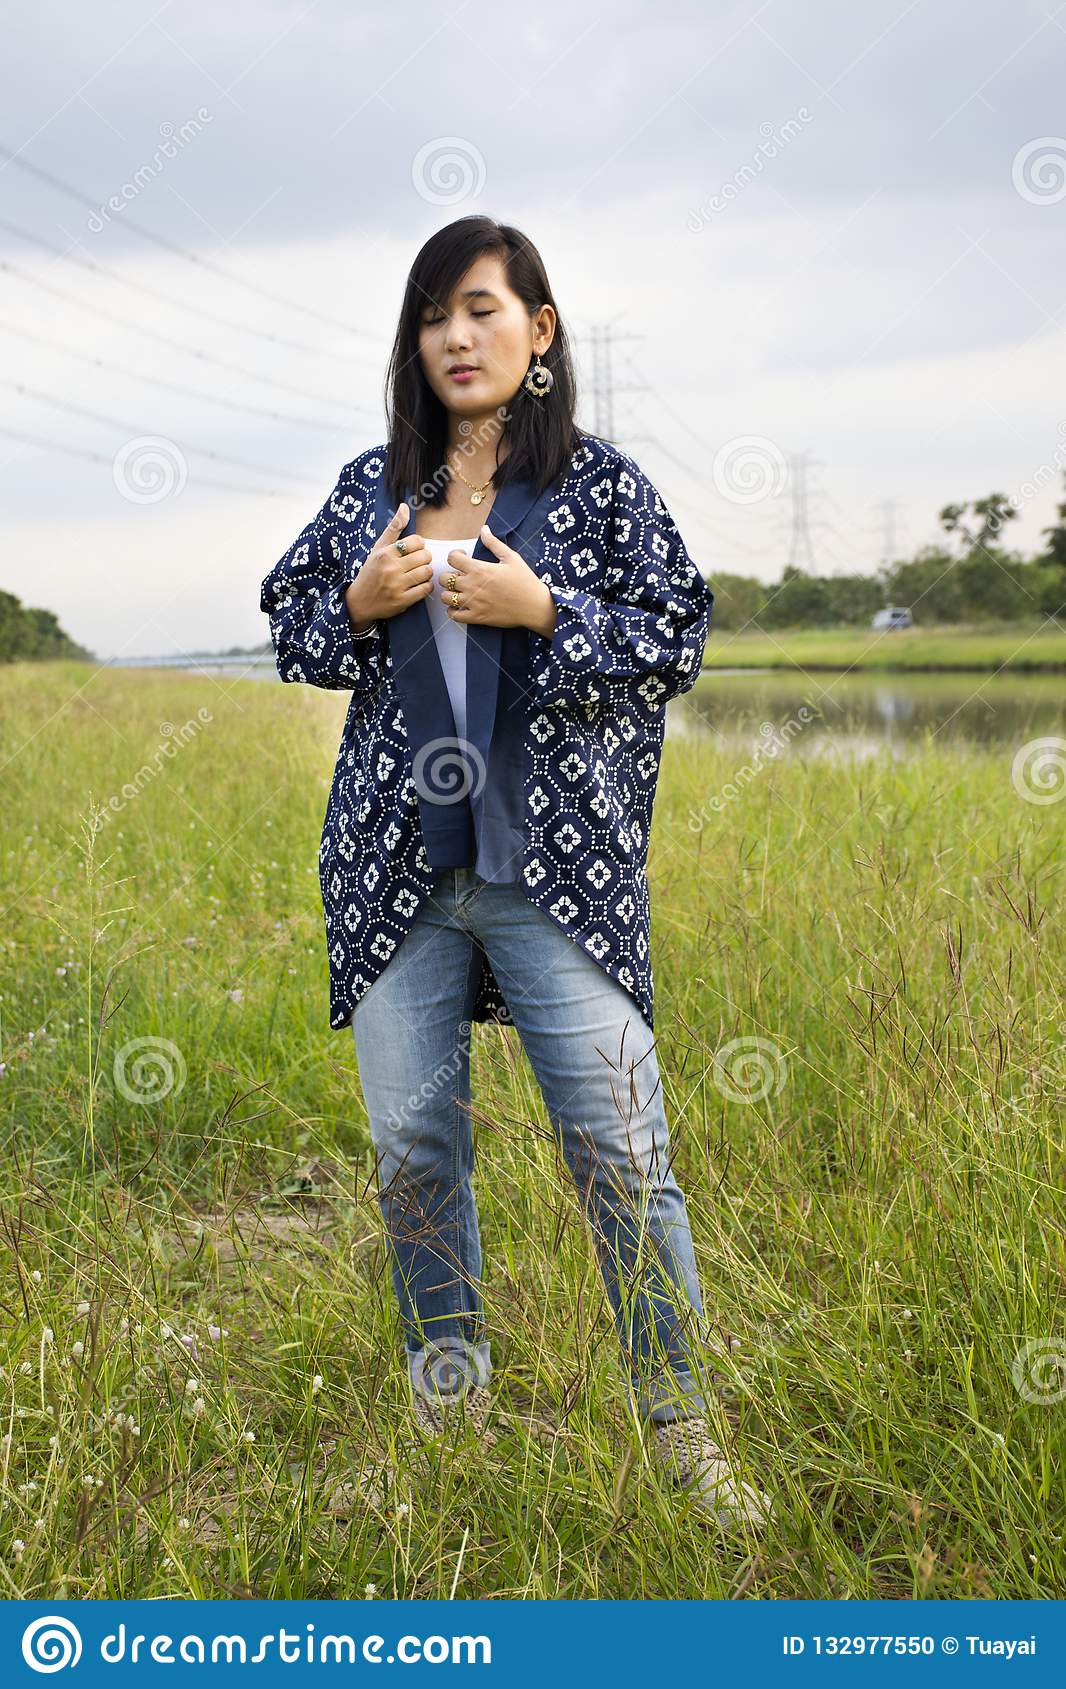 Thai woman wearing fashion indigo clothes posing portrait for take photo at  outdoor